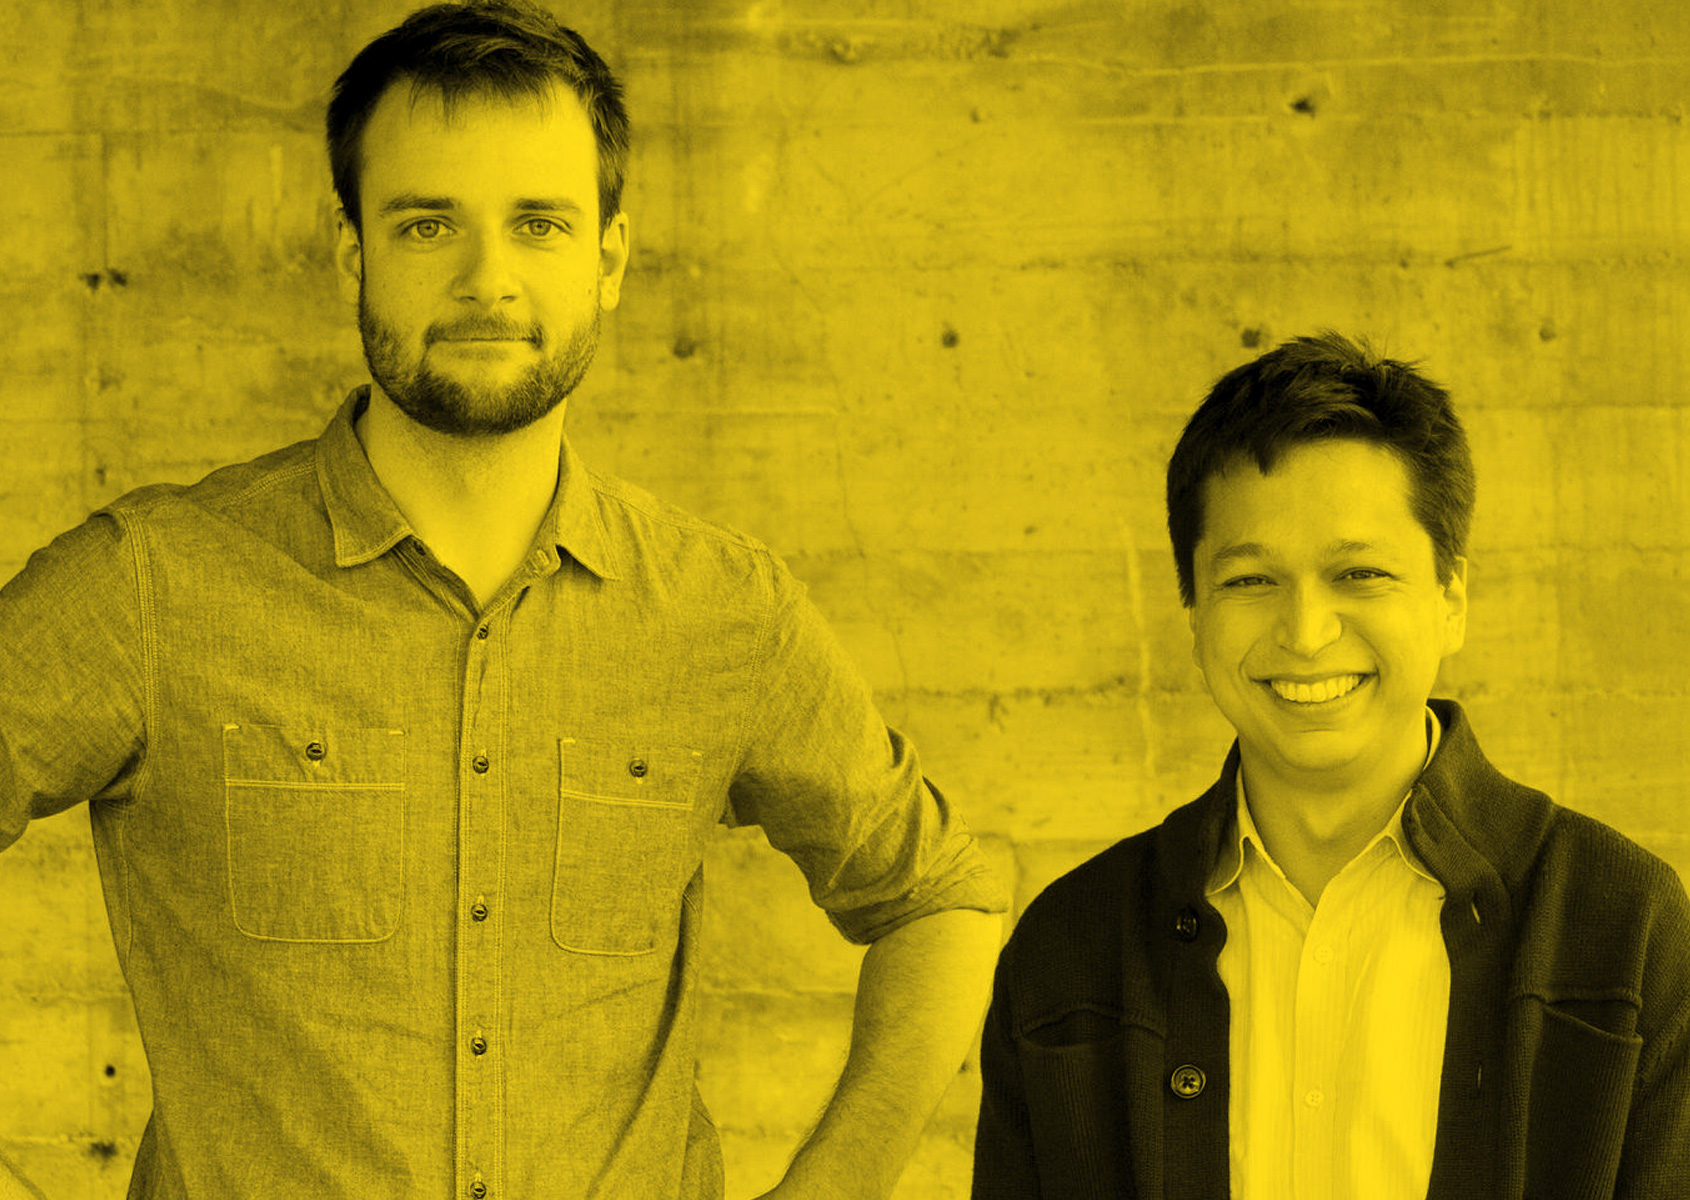 Evan Sharp e Ben Silbermann, i co-fondatori insieme a Paul Sciarra di Pinterest.